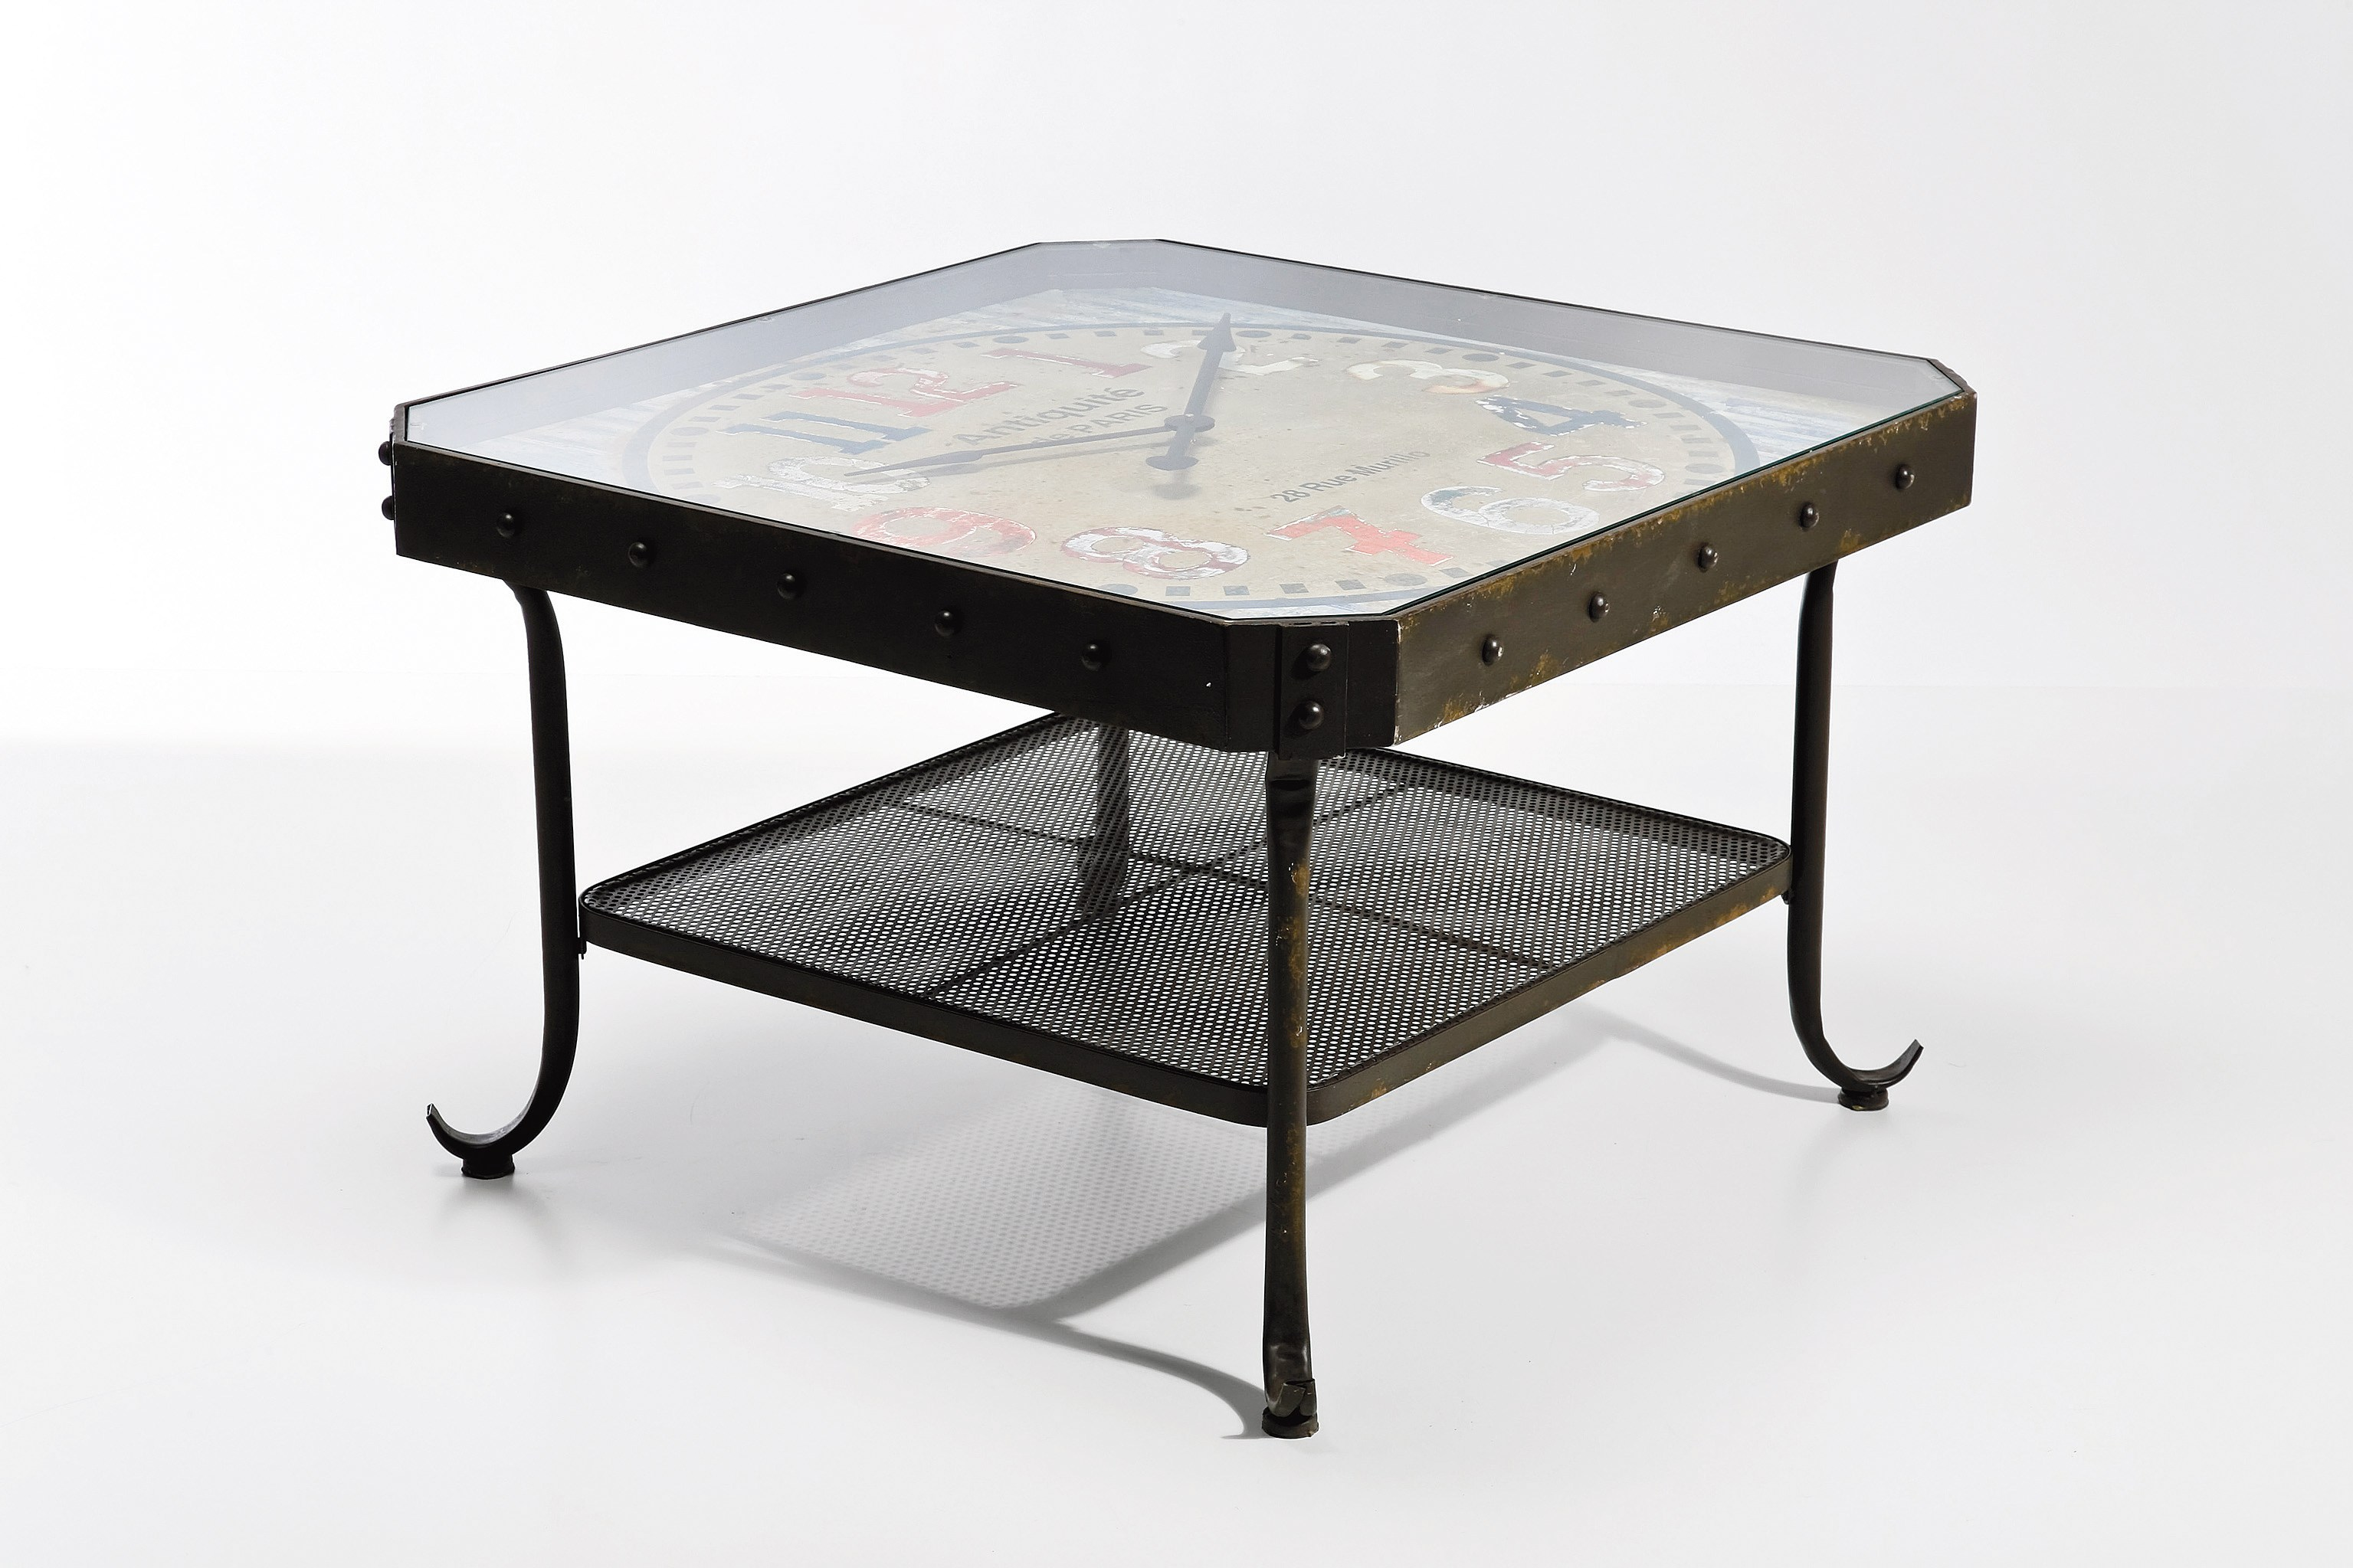 Square steel coffee table antique clock low coffee table by kare design Low coffee table square